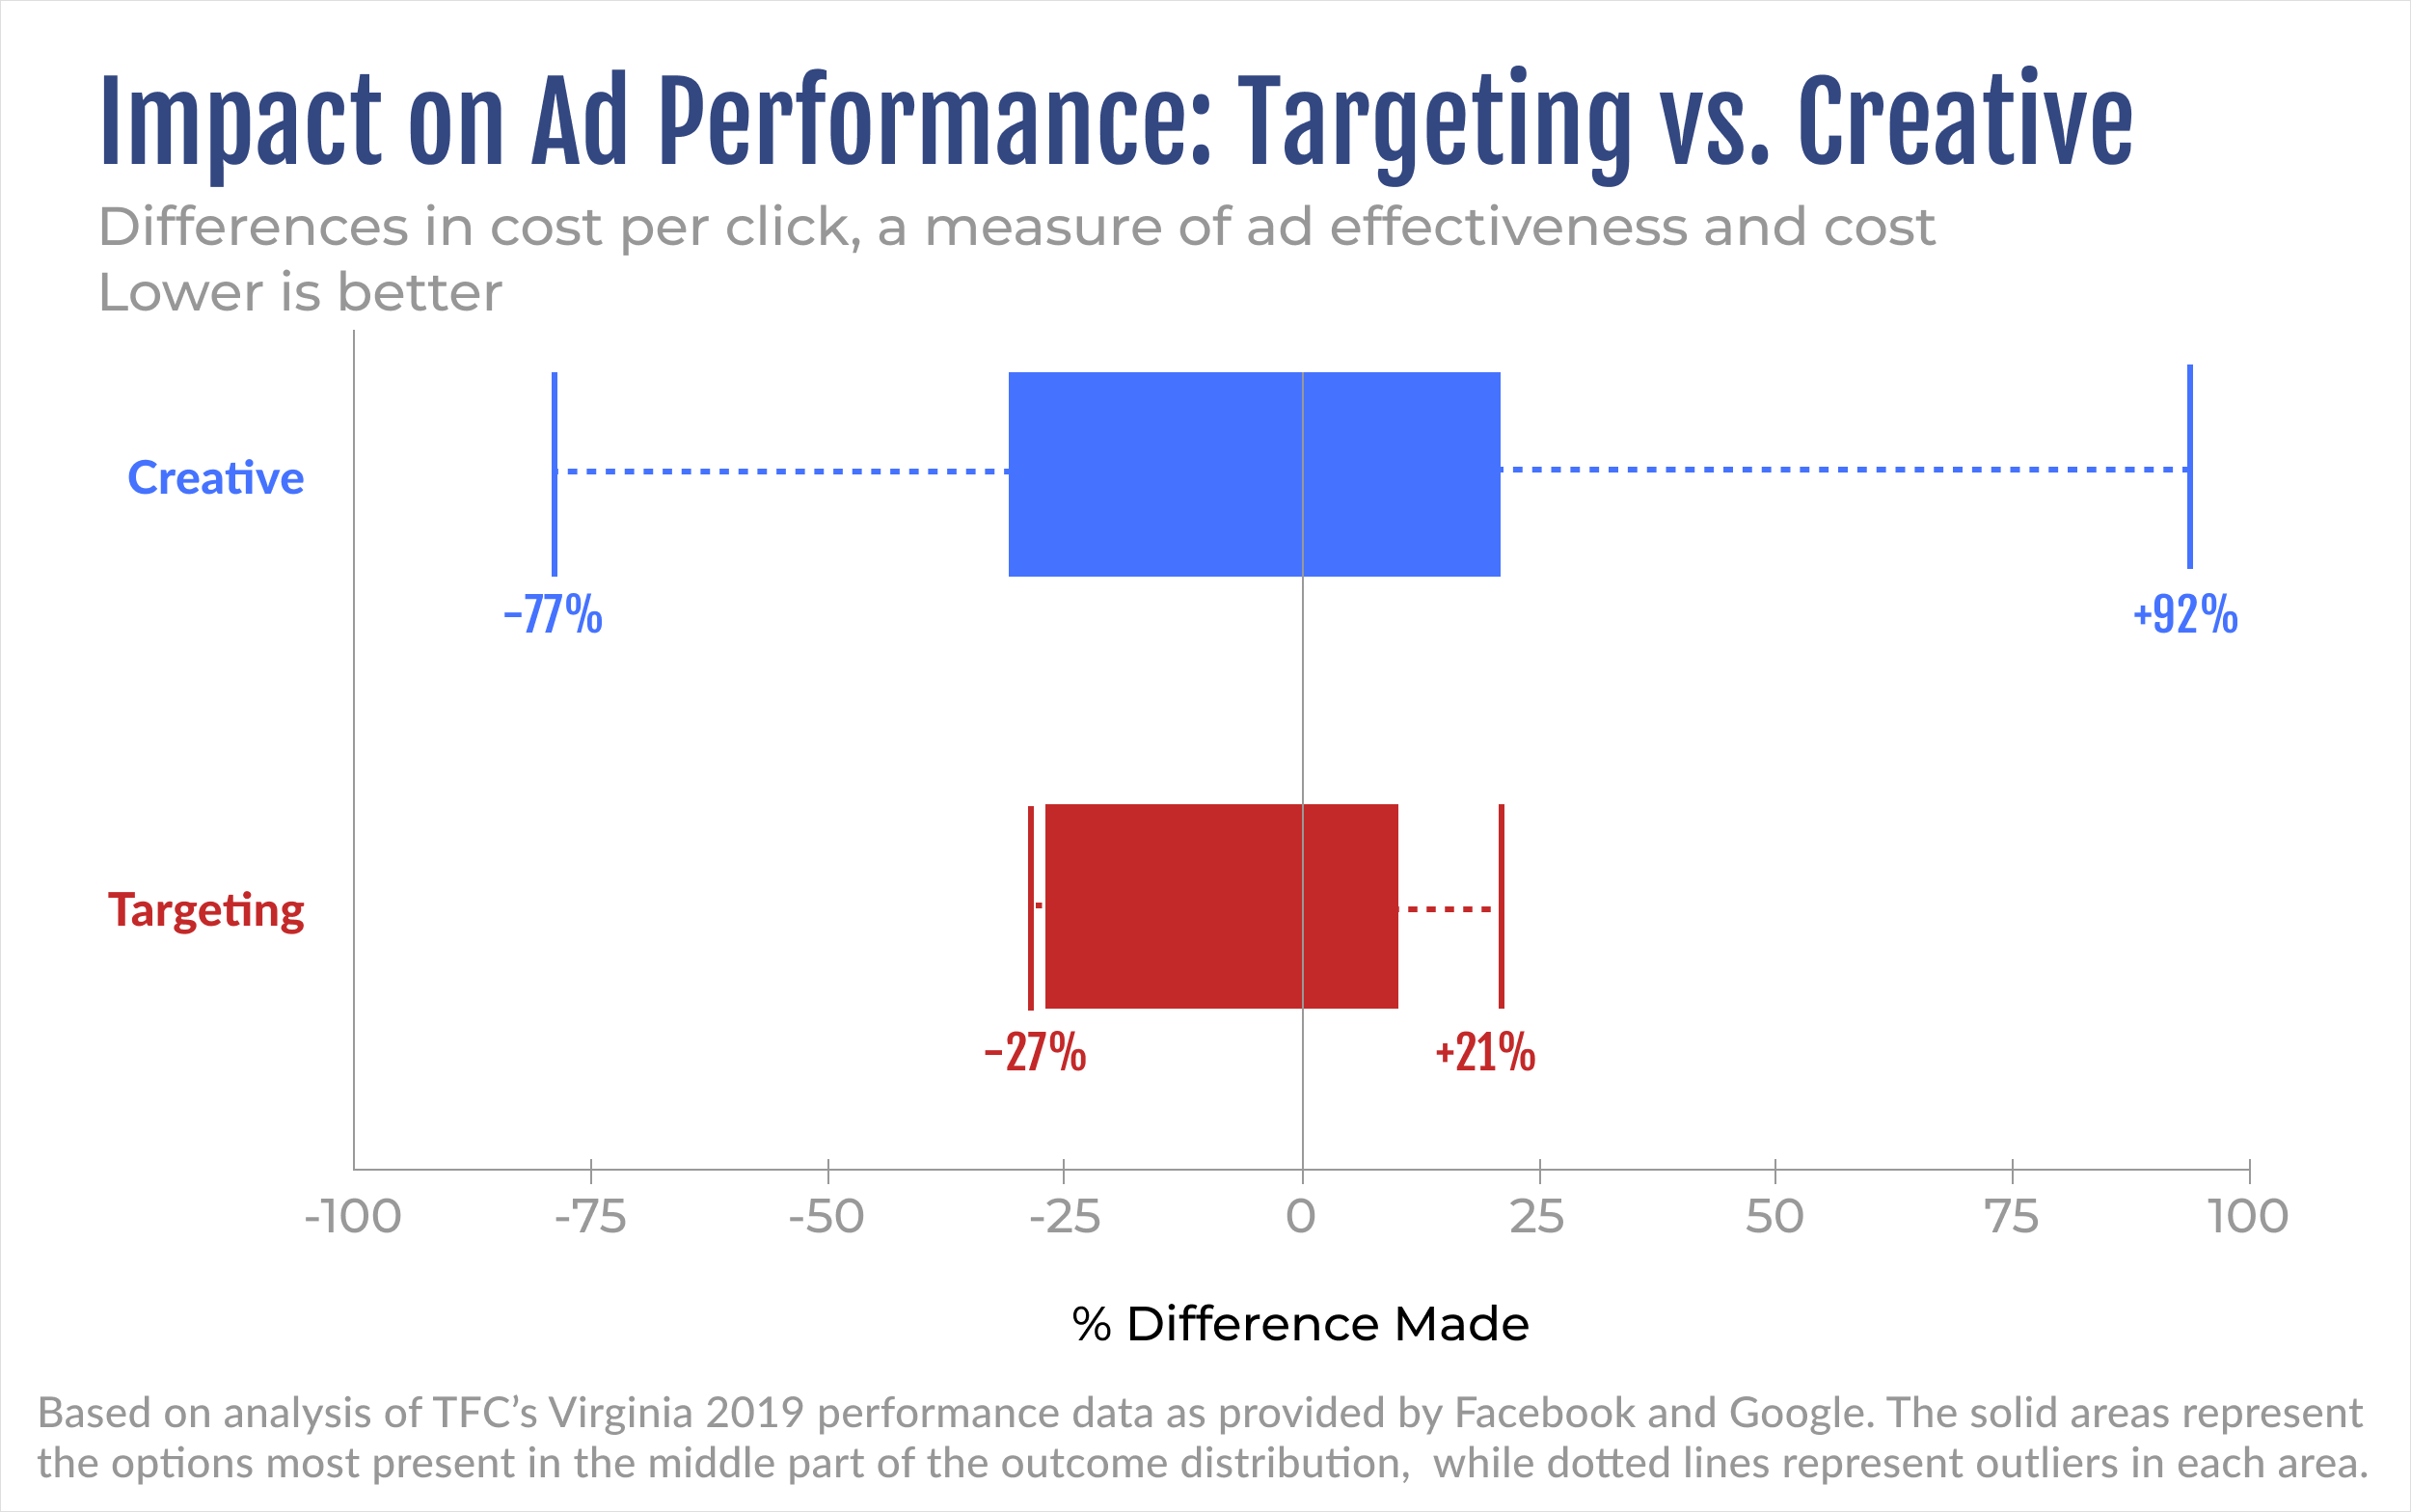 Differences in cost per click for ads using creative choices vs targeting